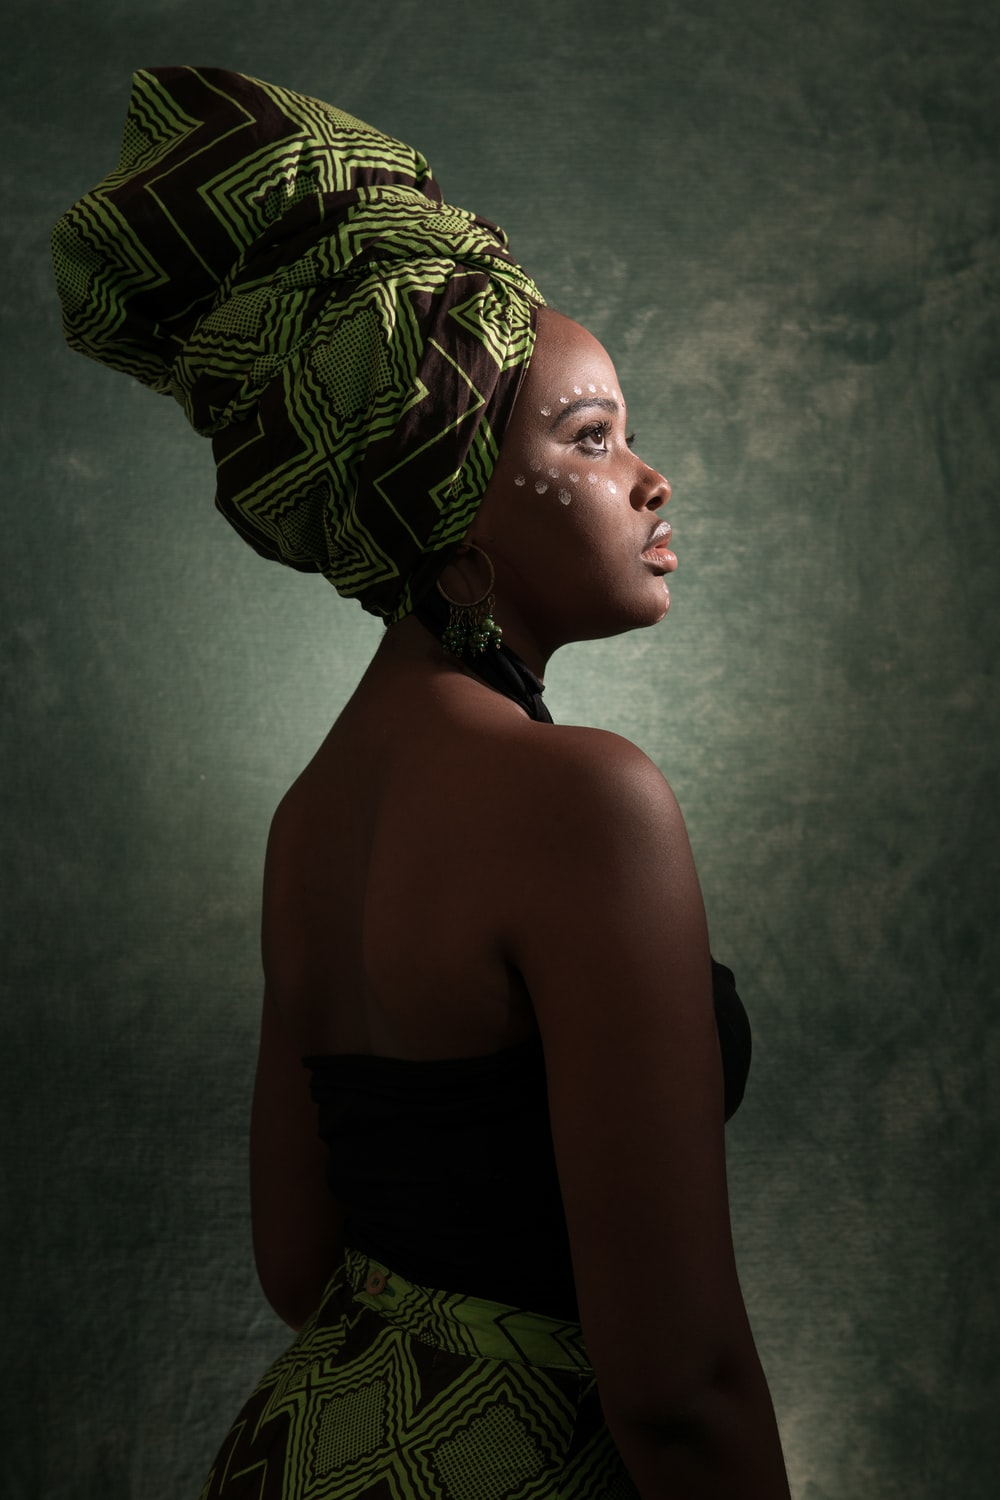 woman in black and green tube-top dress with turban